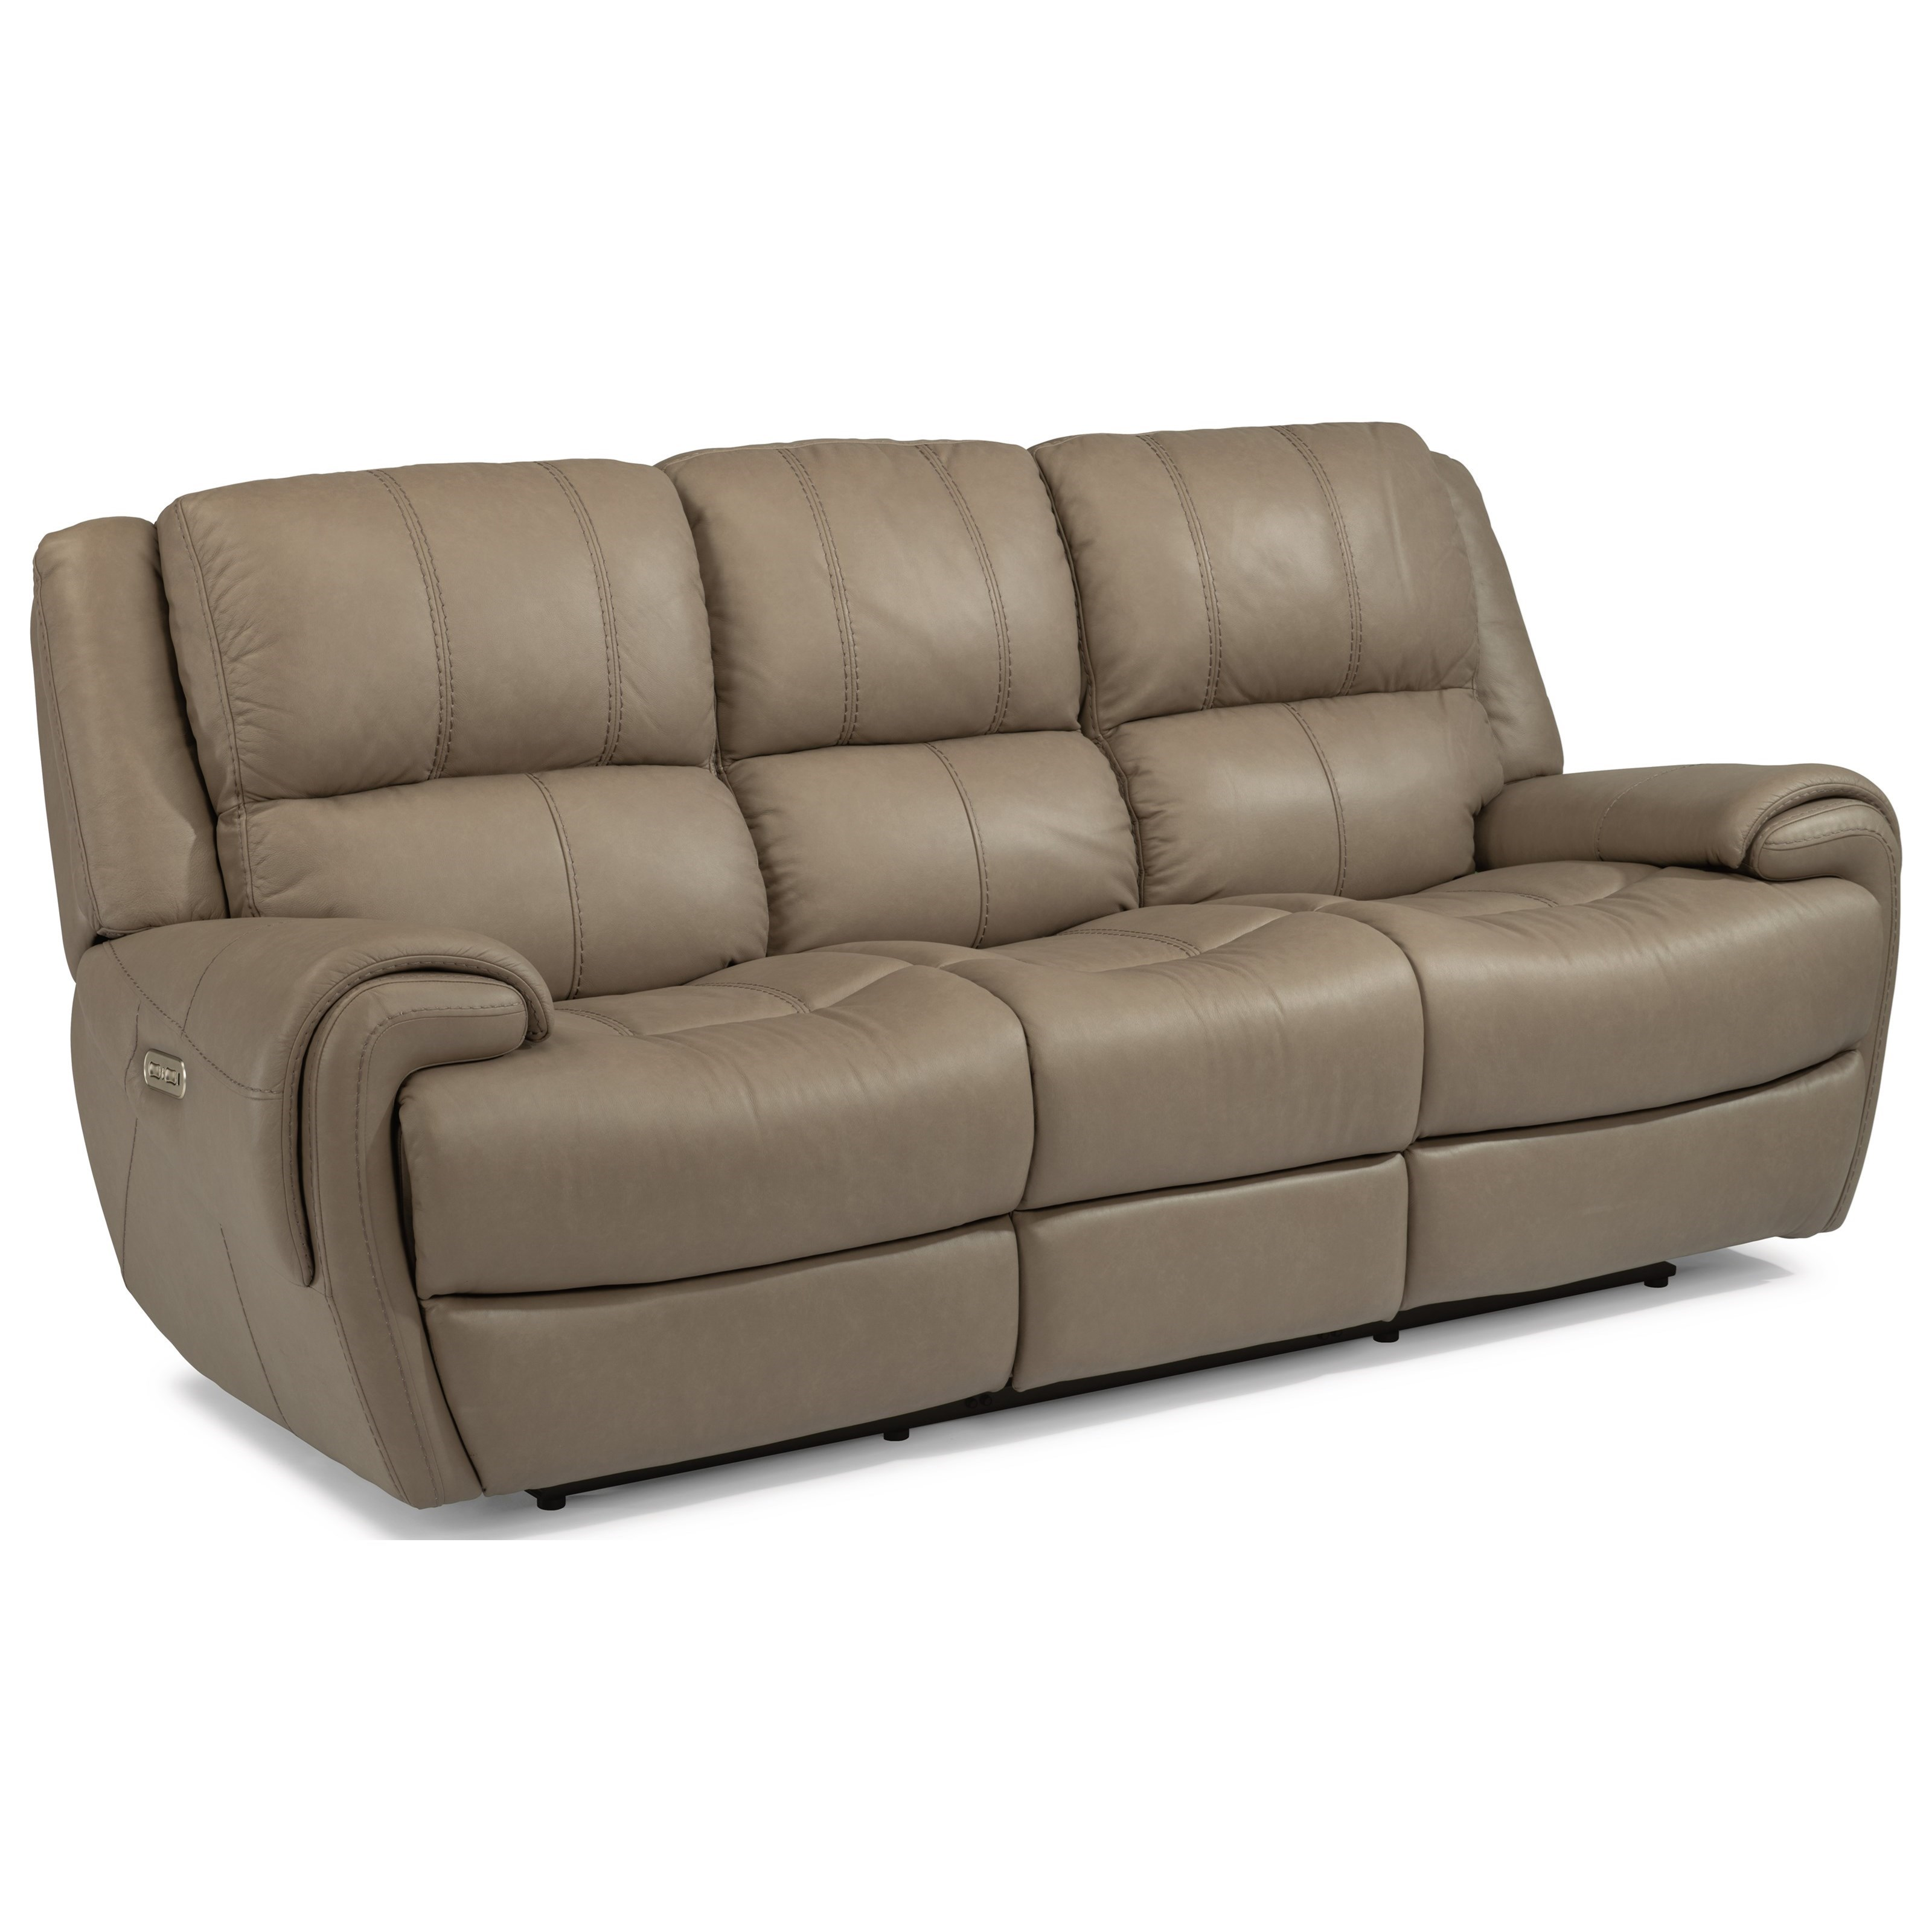 Latitudes-Nance Power Reclining Sofa with Power Headrests by Flexsteel at Arwood's Furniture